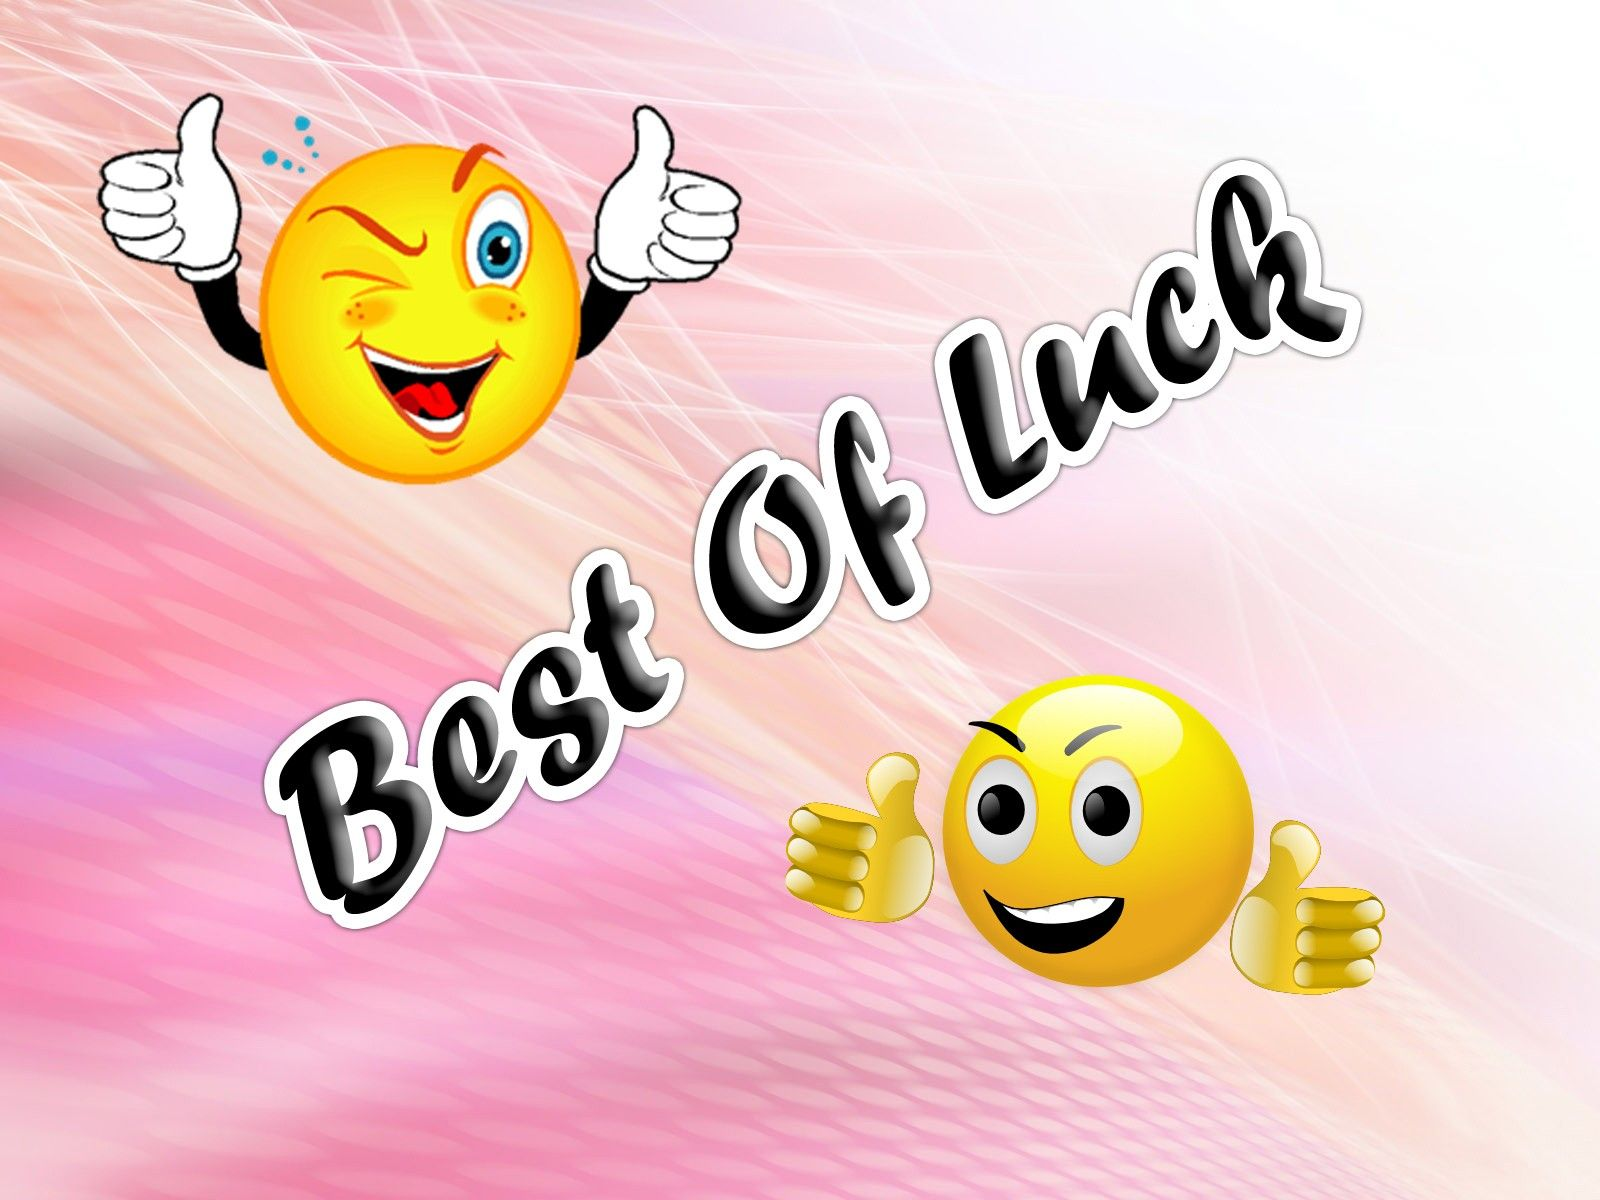 Pin By Margaret On Good Luck Good Luck Wishes Good Luck Pictures